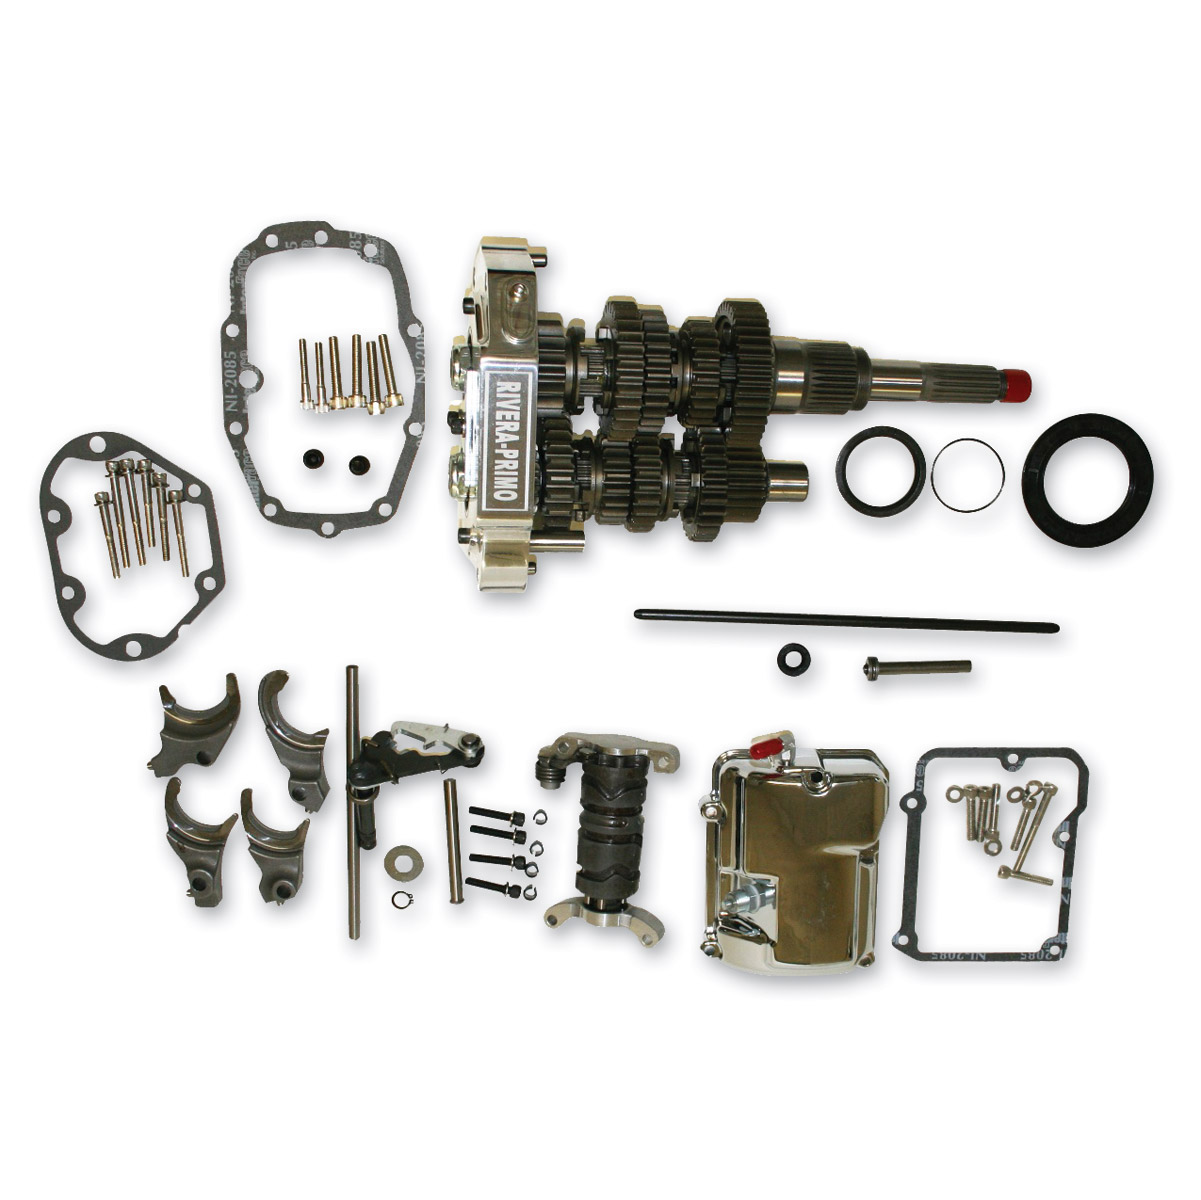 Rivera Primo Powerdrive 6 Speed Gear Set